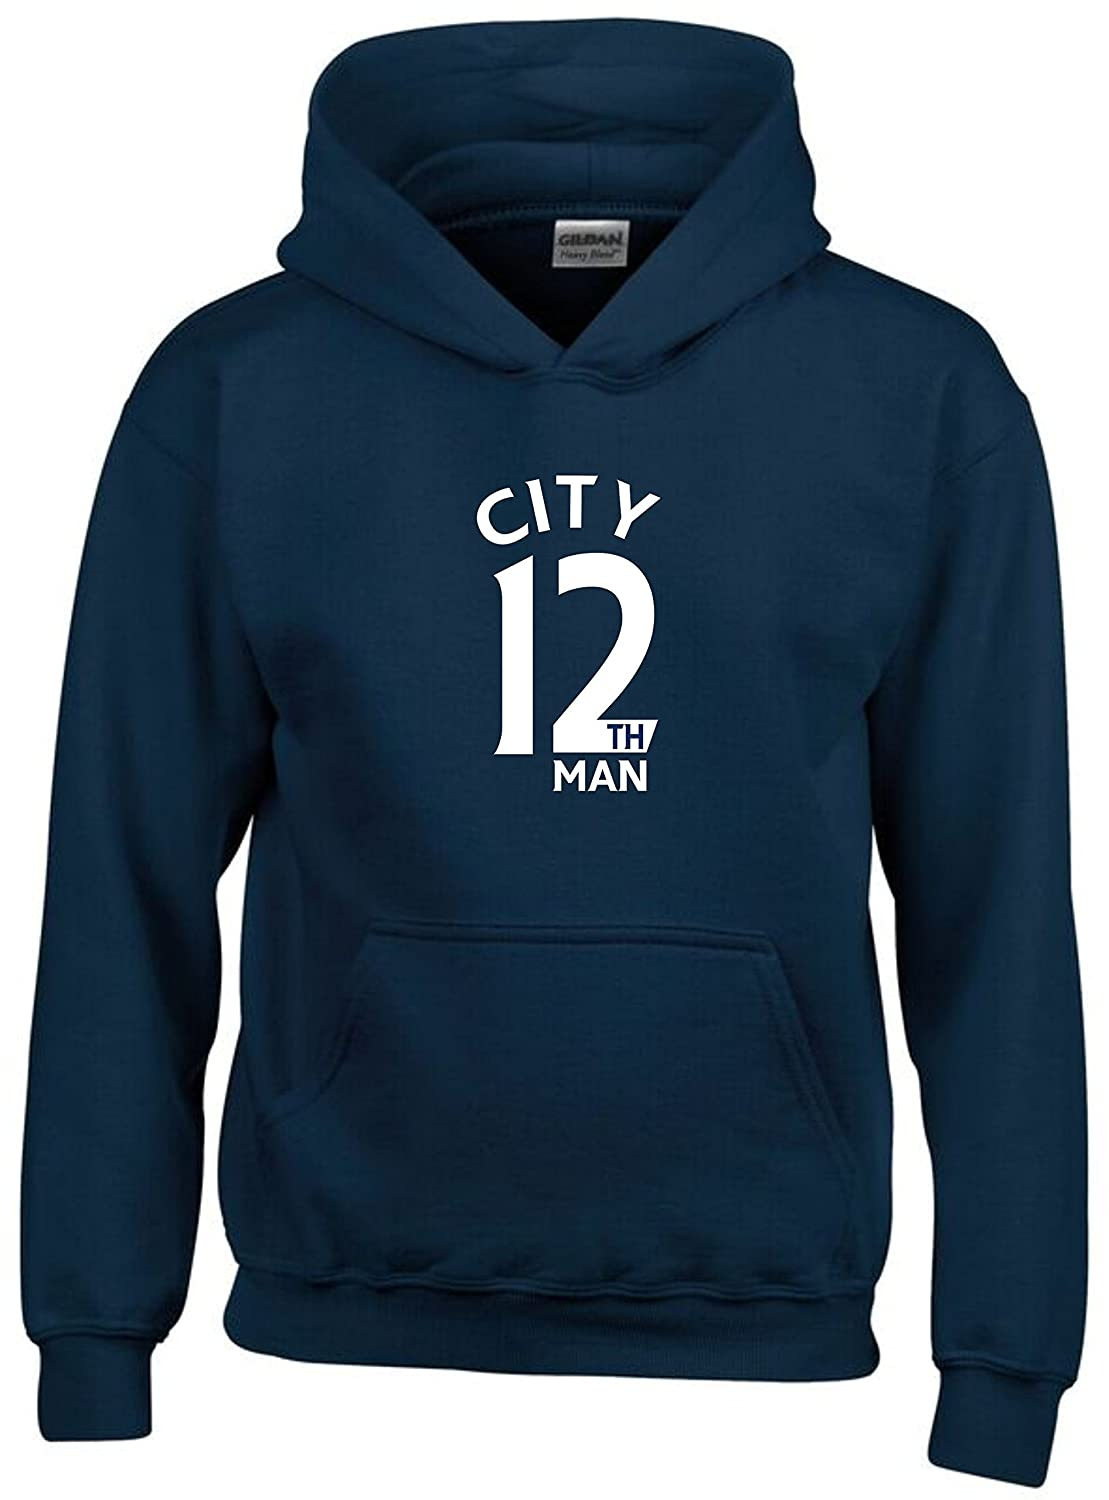 City 12th Man Fan Hoodie Kids Navy